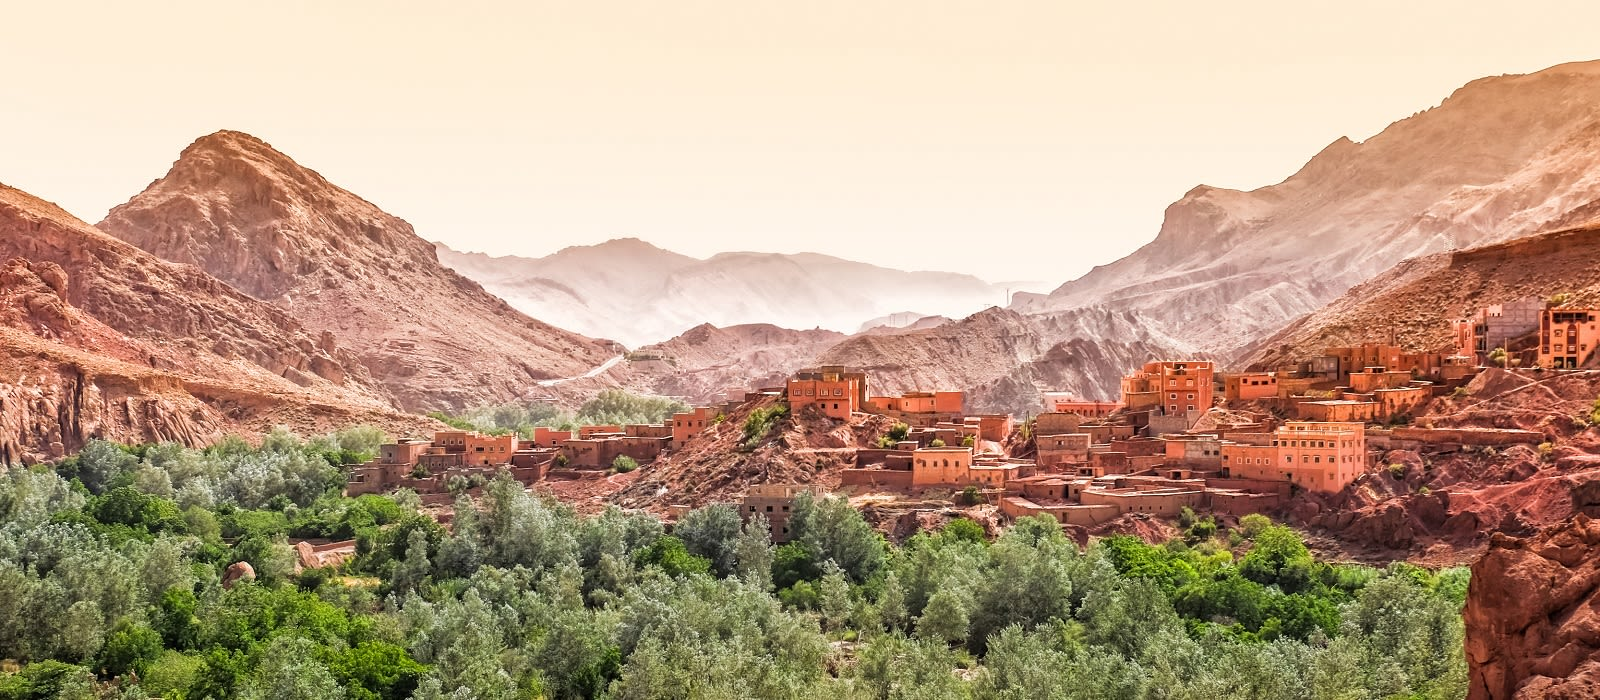 Destination High Atlas Morocco